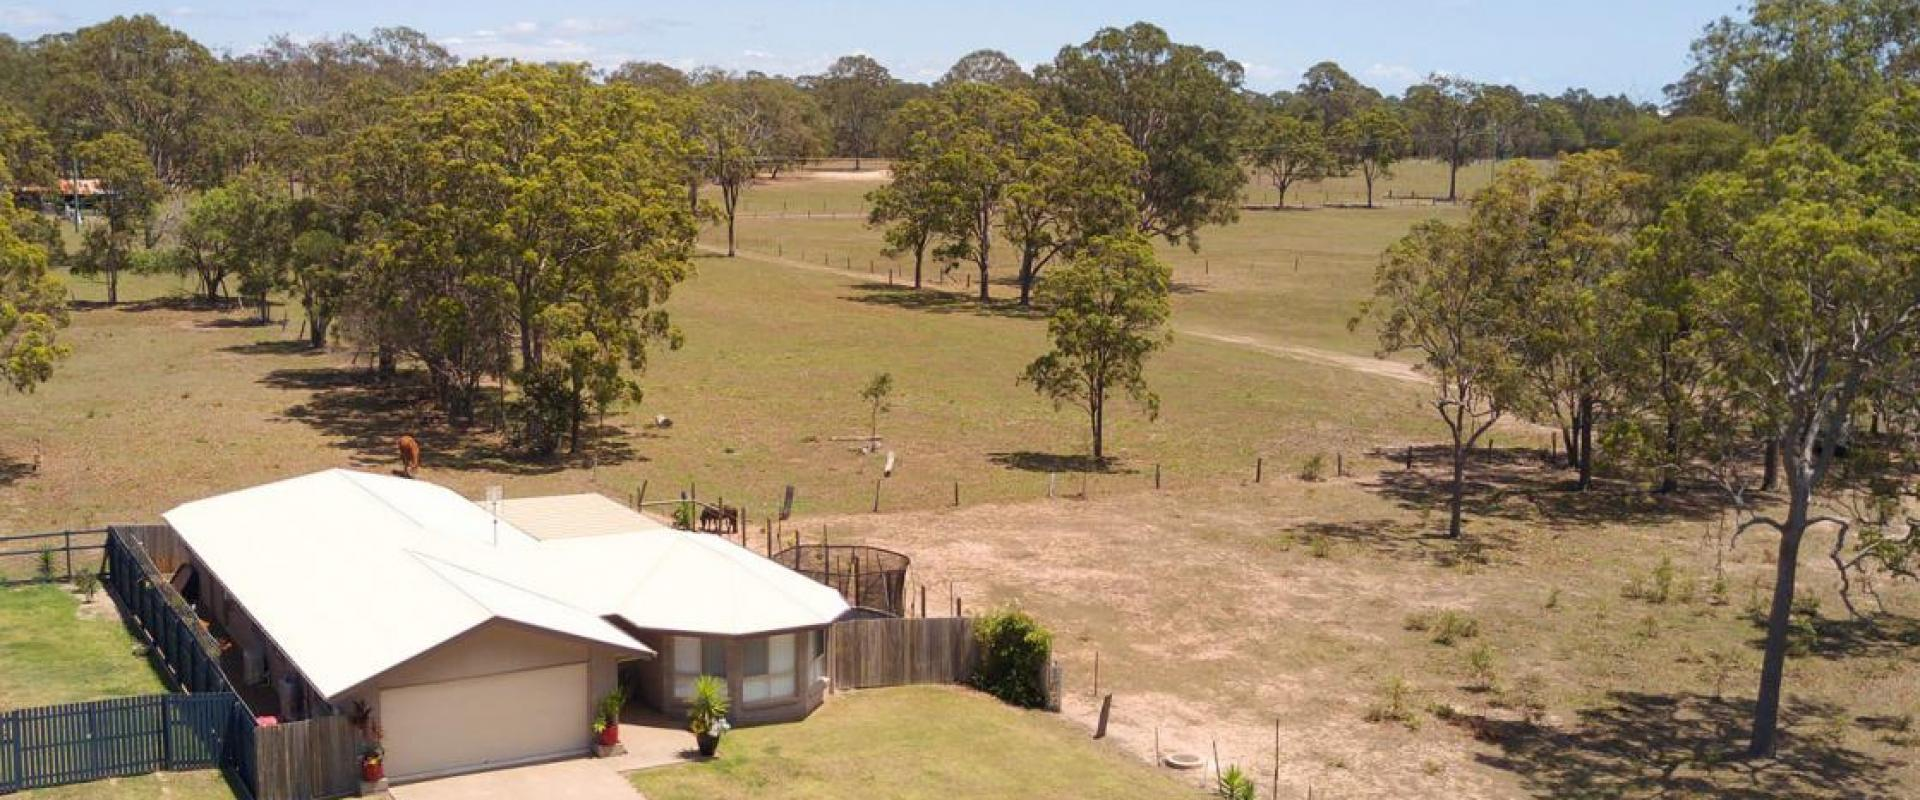 ACREAGE VIEWS WITHOUT THE MAINTENANCE, WIDE OPEN SPACE, PEACE AND QUIET, ABUNDANCE OF WILDLIFE INC CATTLE, HORSES, KANGAROOS, KOOKABURRAS & COCKATOOS